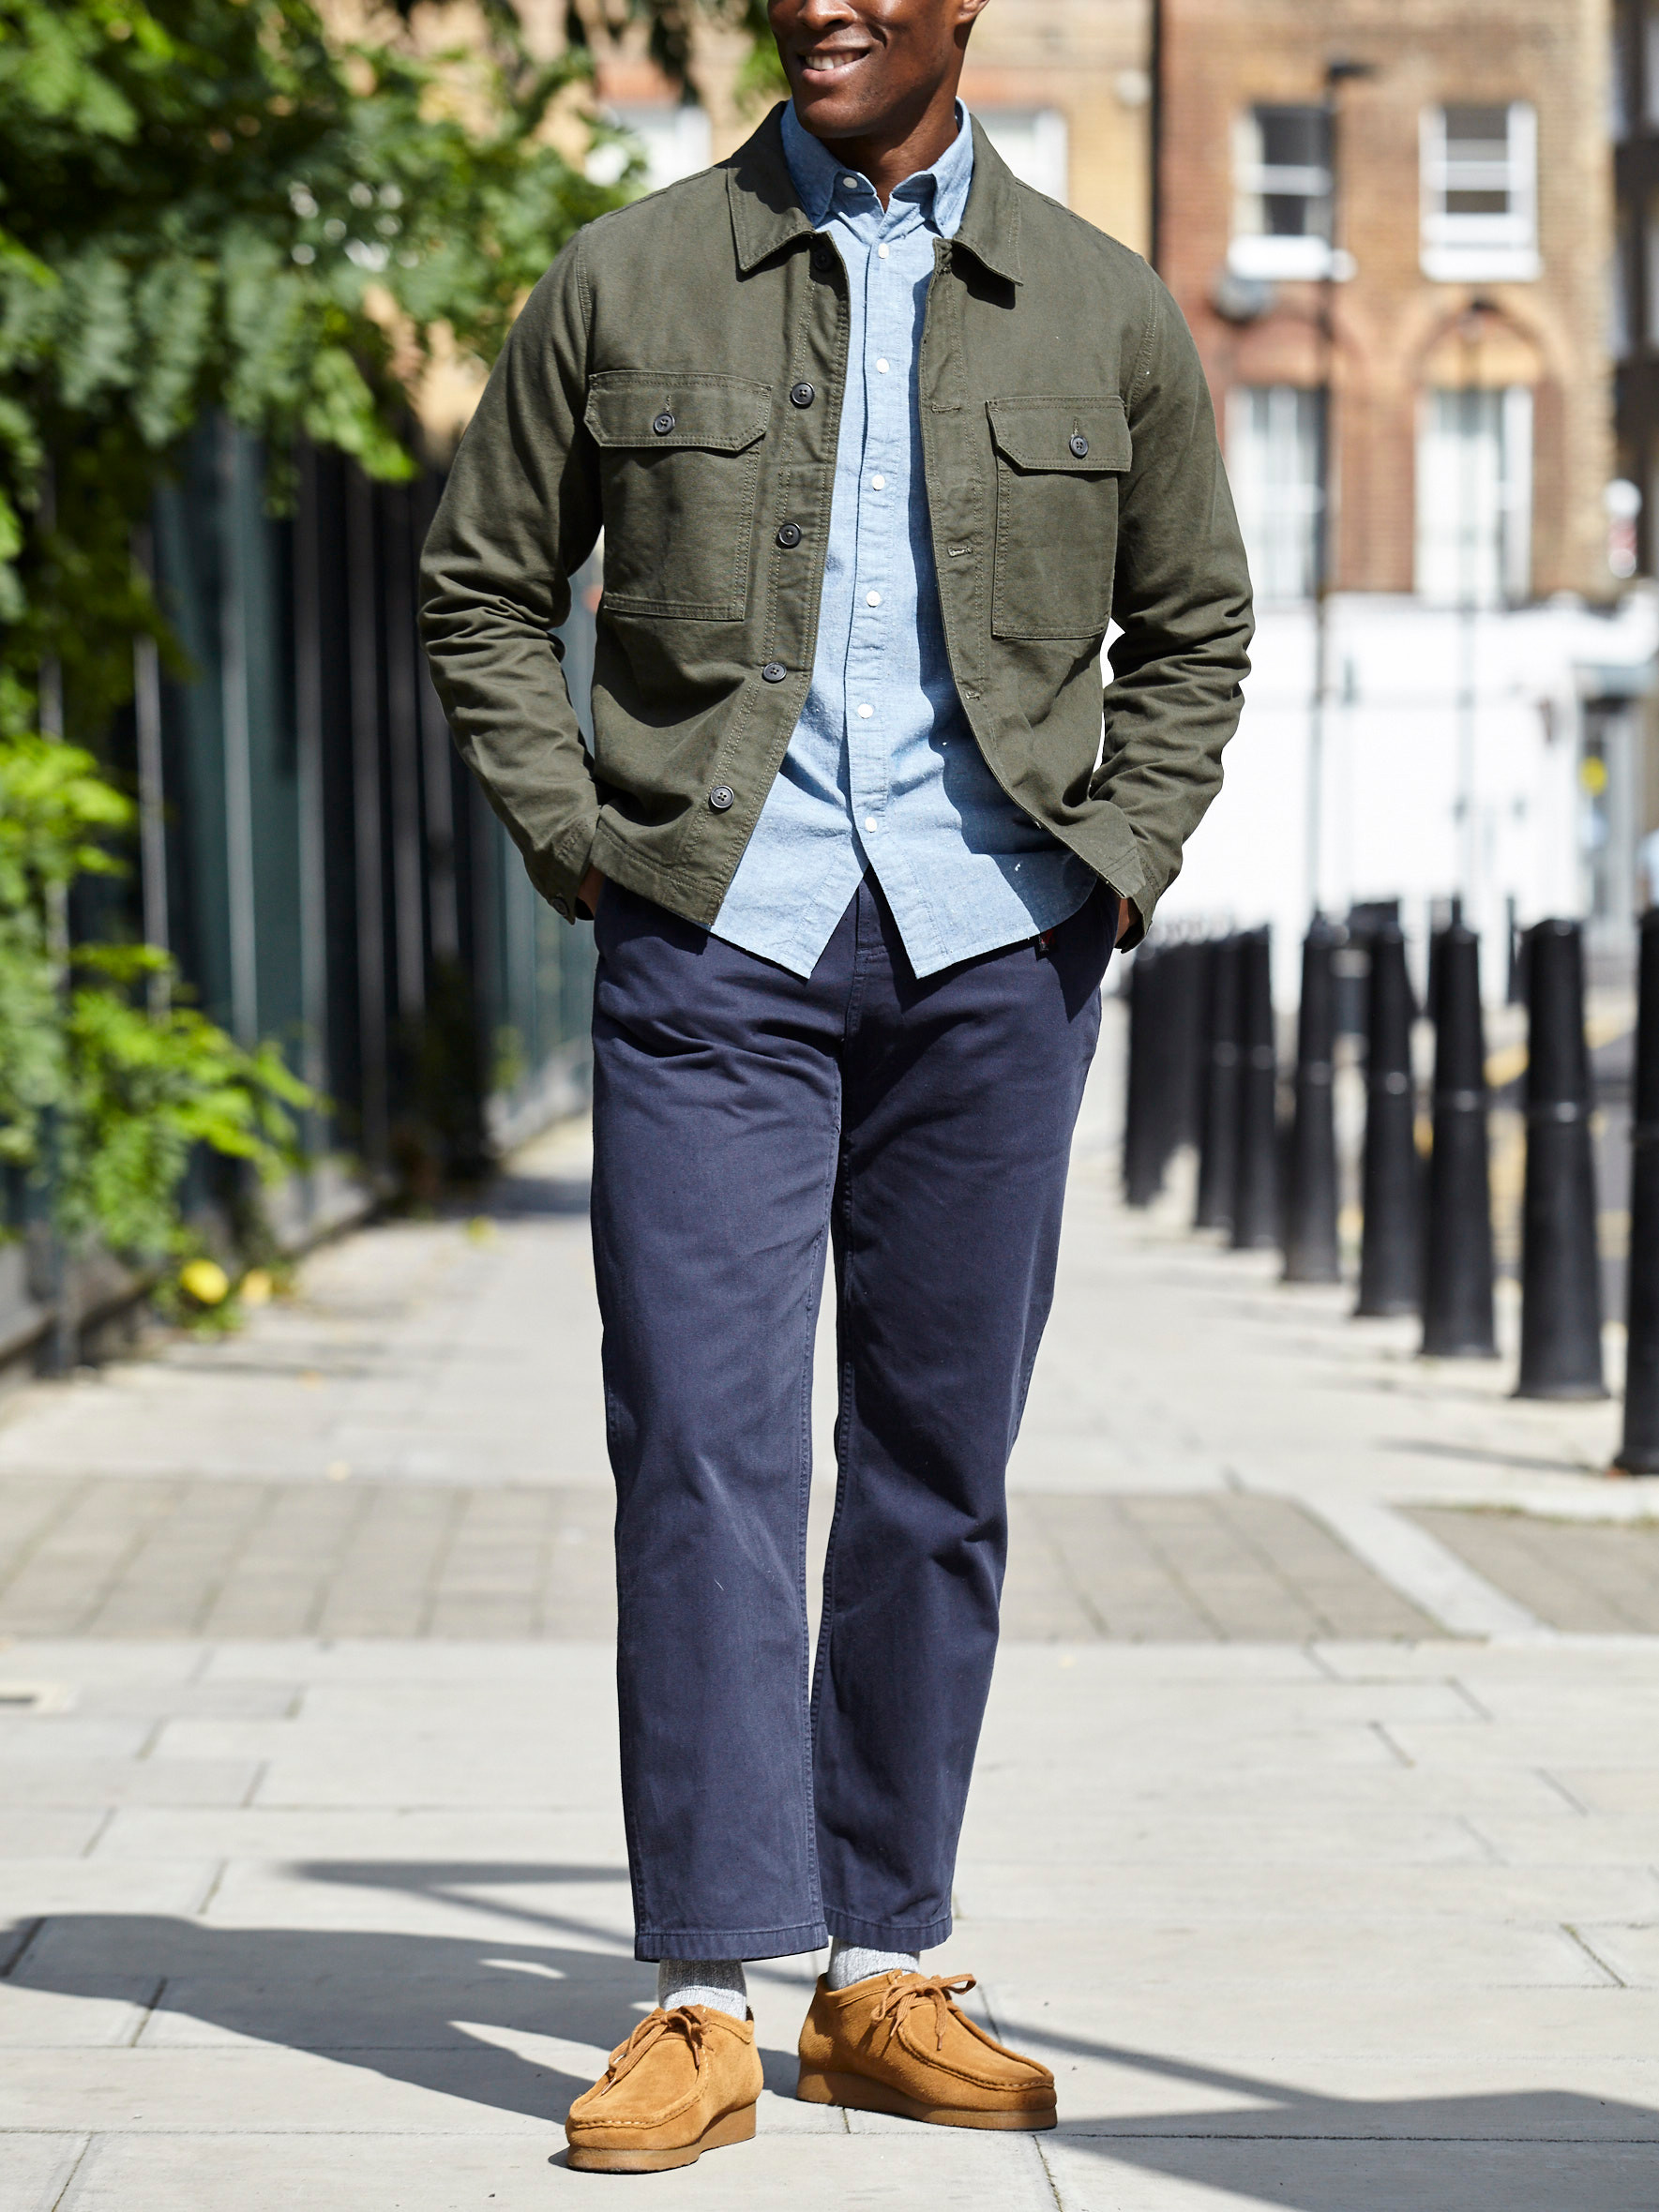 Men's outfit idea for 2021 with green utility jacket, chambray shirt, navy chinos, moccasins / wallabees. Suitable for spring and fall.